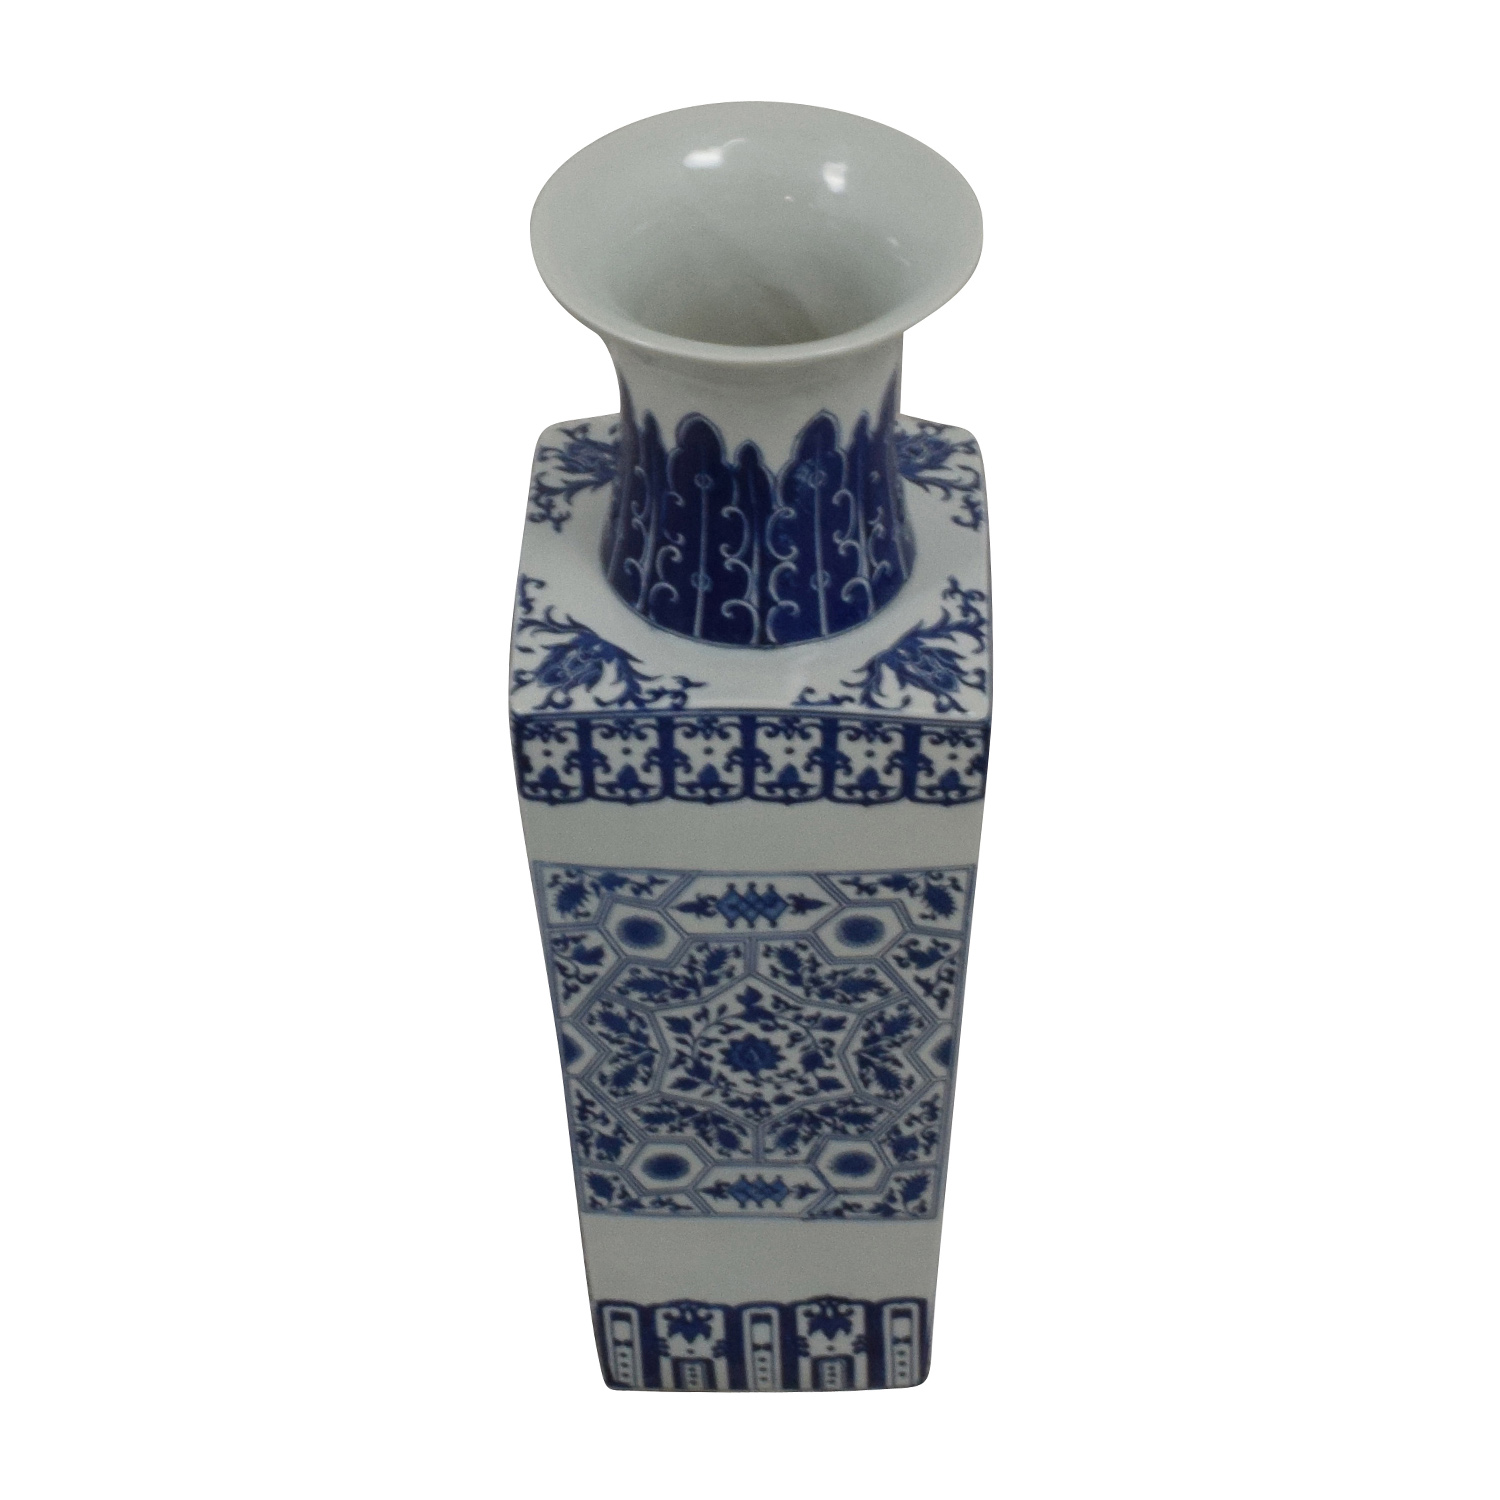 Bungalow 5 Bungalow 5 Summer Square Vase discount